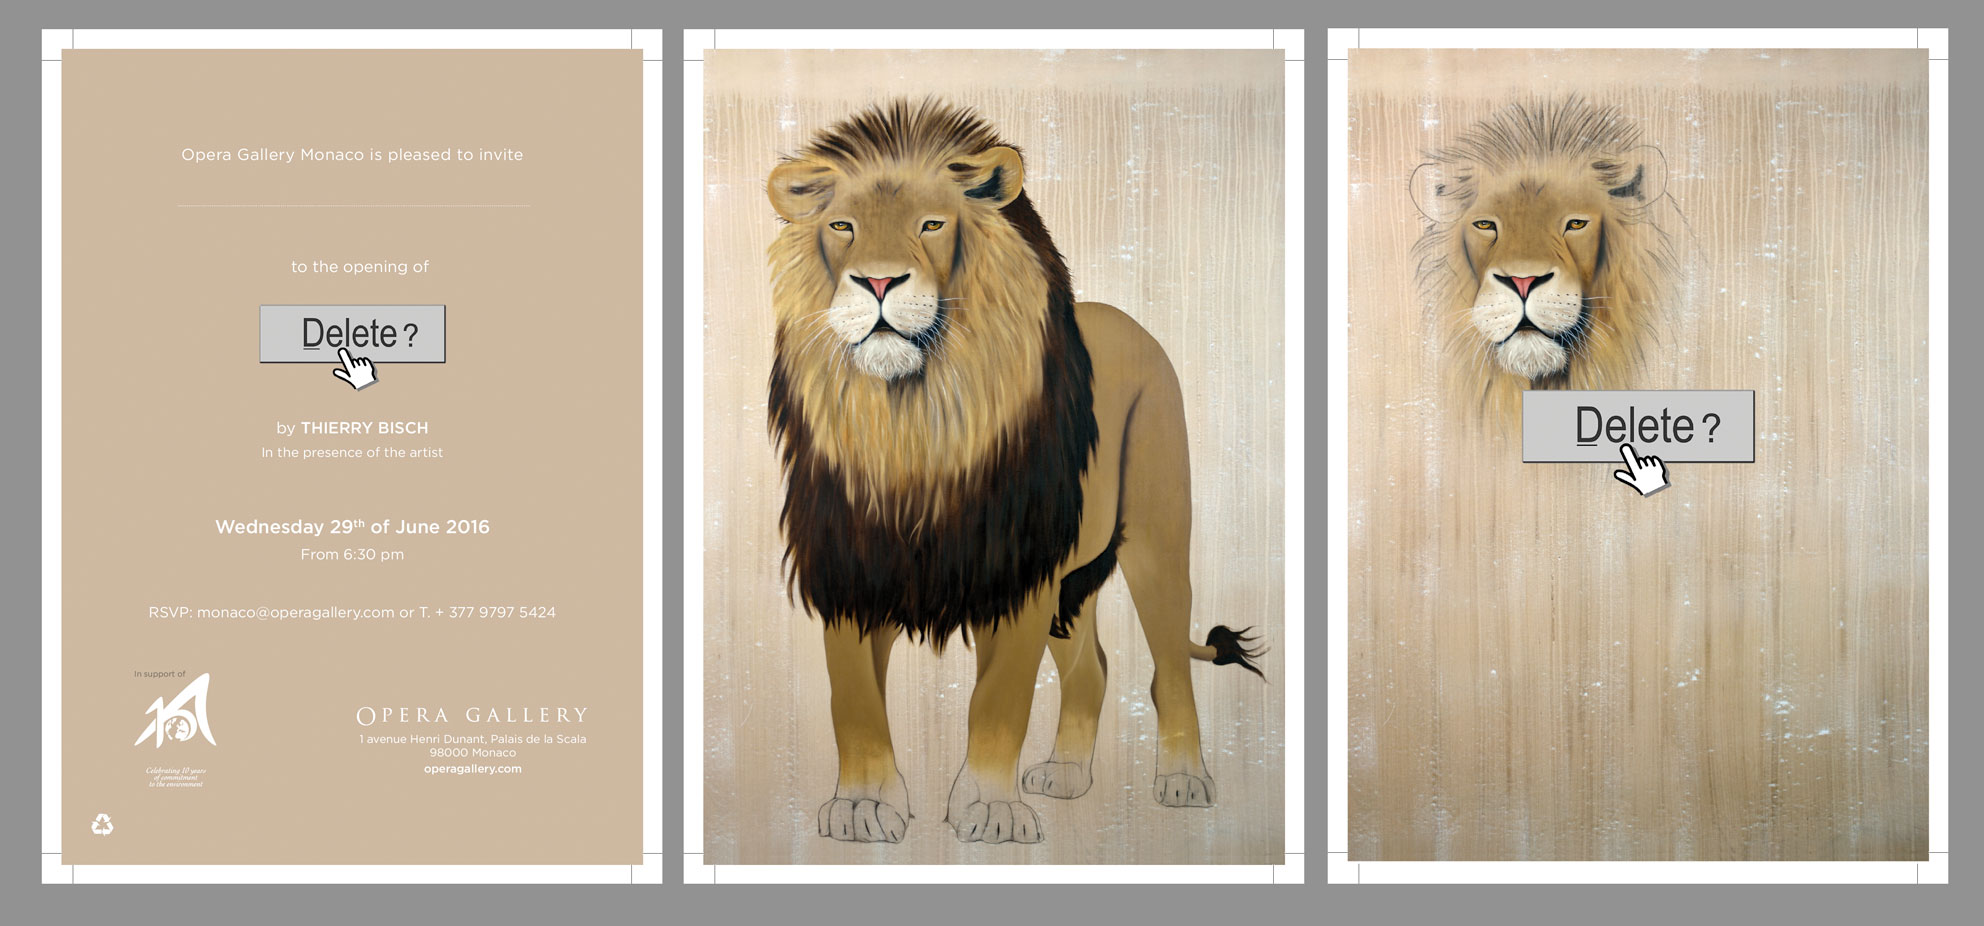 Invitation Monaco 2016 asiatic-lion-indian-persian-panthera-leo-persica-threatened-endangered-extinction Animal painting by Thierry Bisch pets wildlife artist painter canvas art decoration